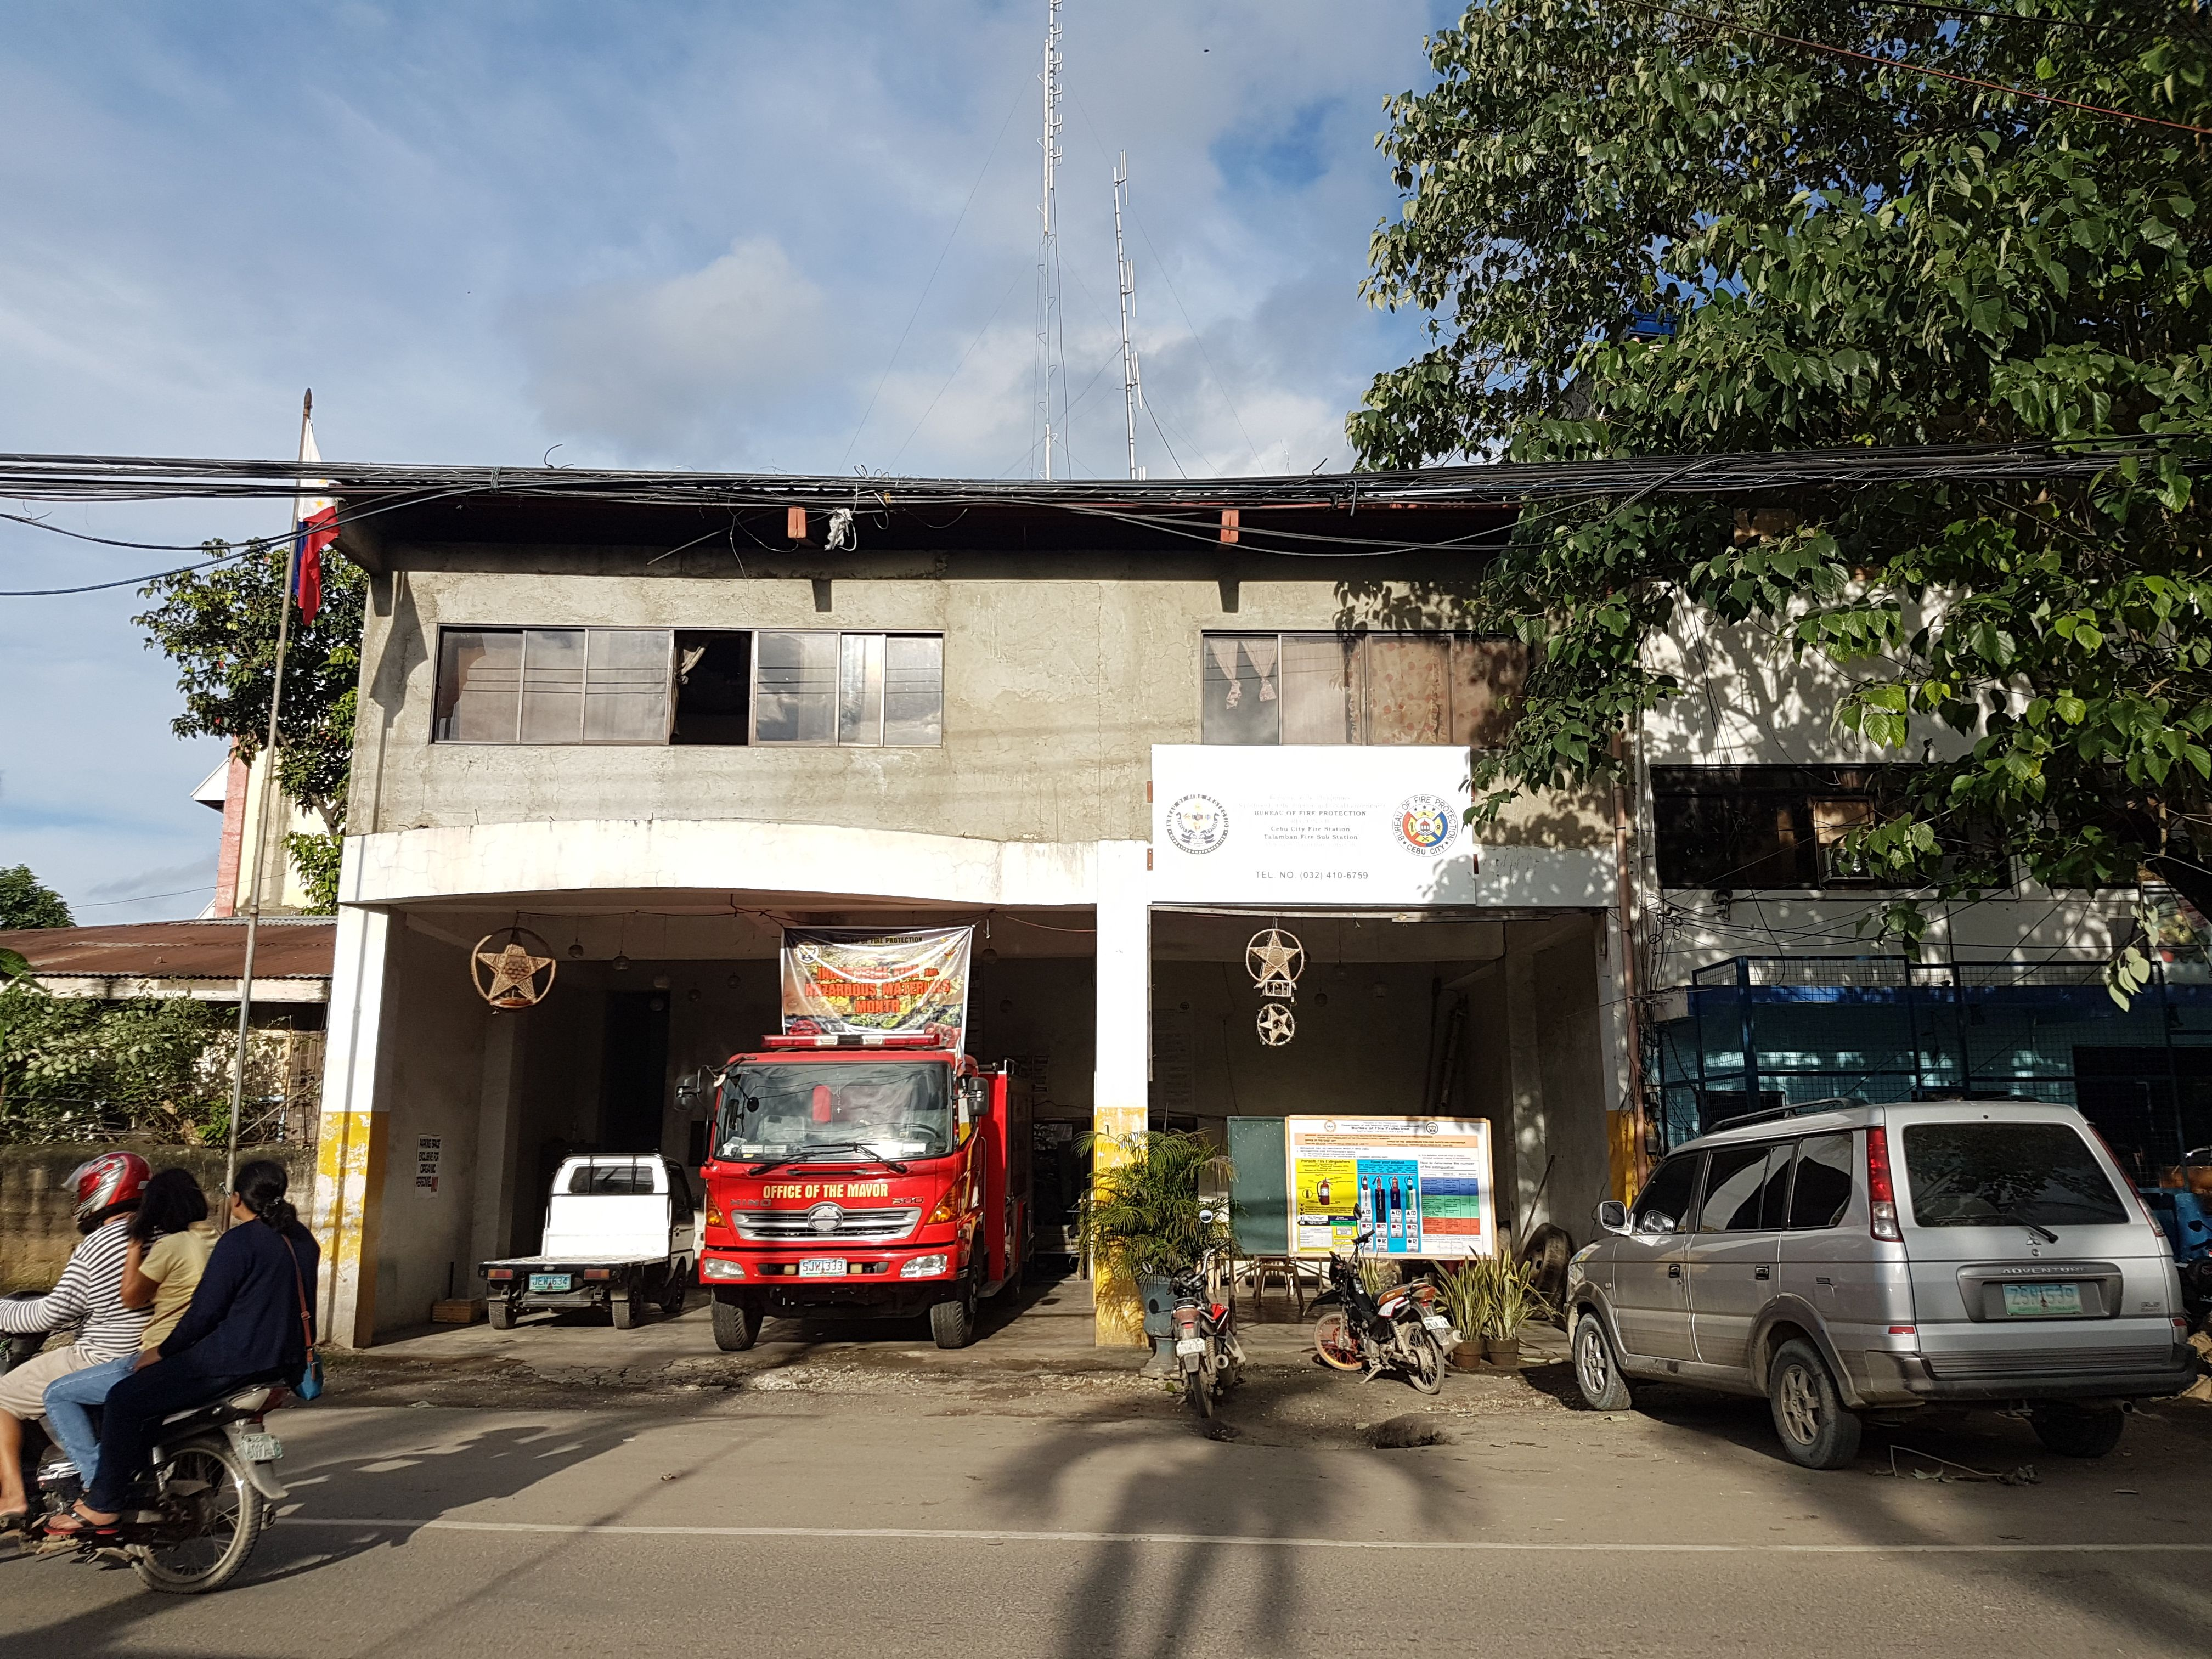 Philippines Fire Station | Fire Station in 2019 | Cebu city, Cebu